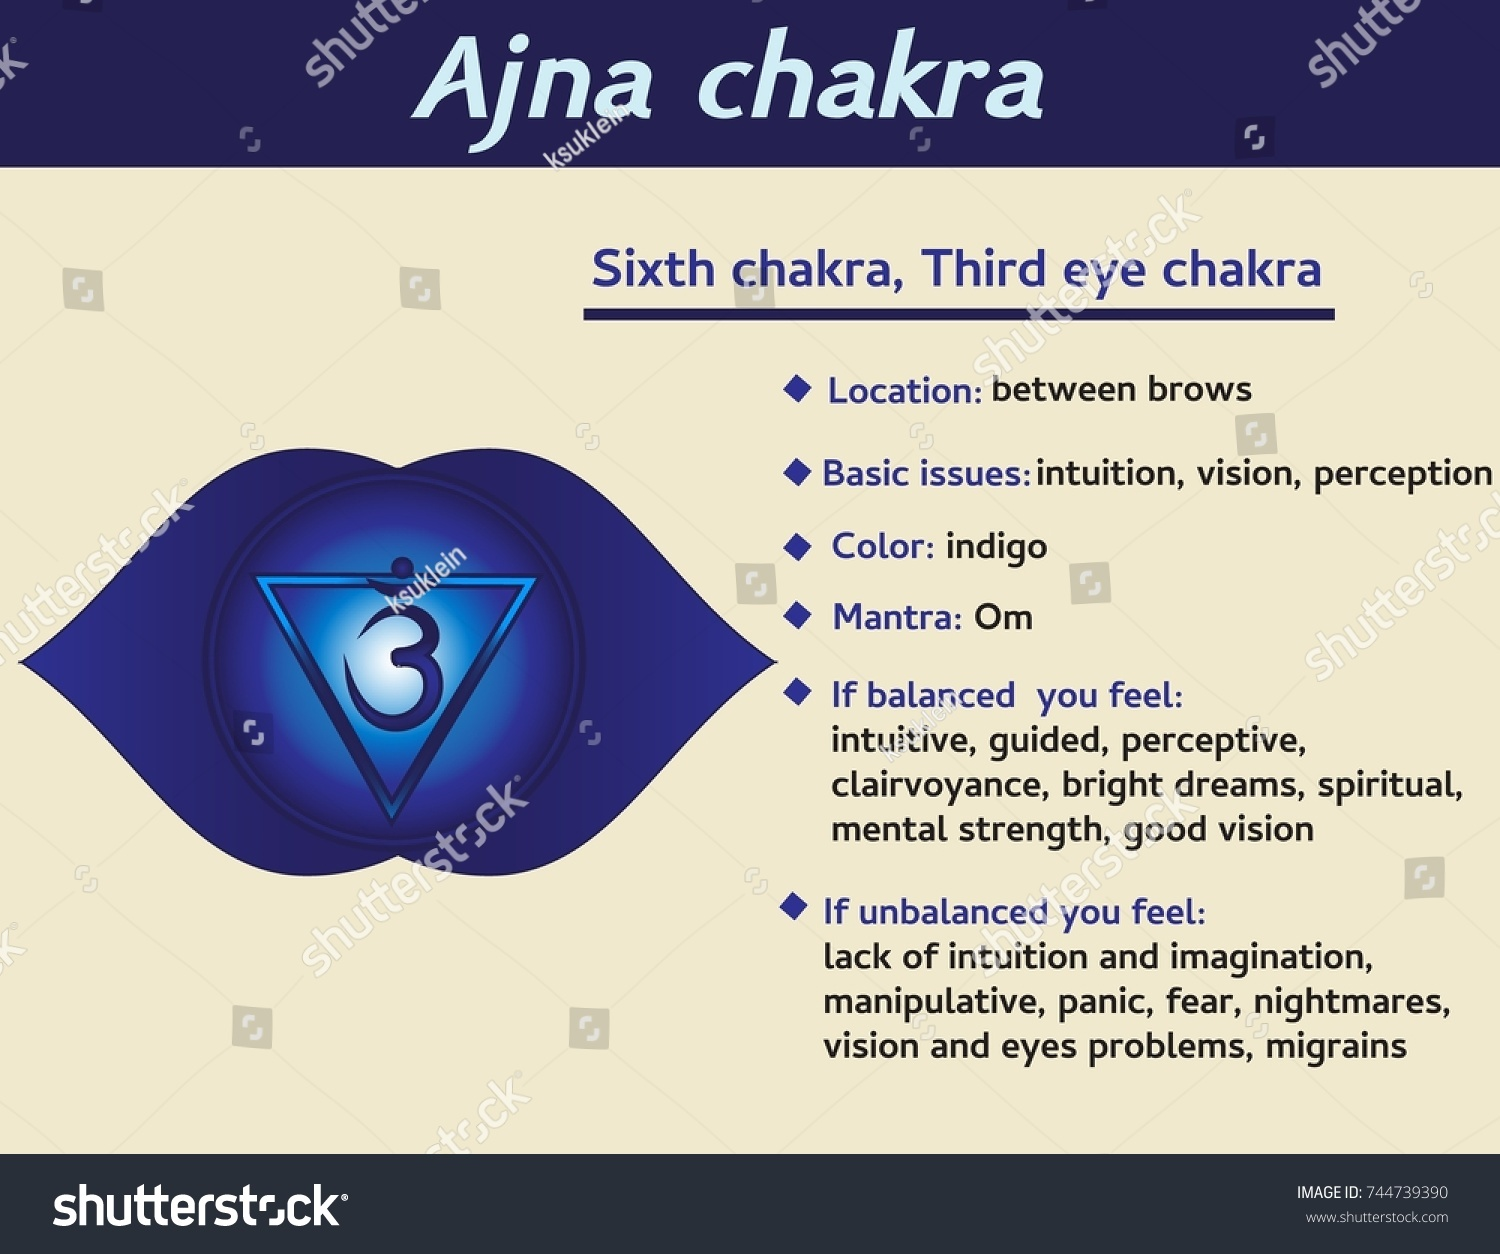 Ajna chakra infographic sixth heart chakra stock vector 744739390 sixth heart chakra symbol description and features information for kundalini buycottarizona Images